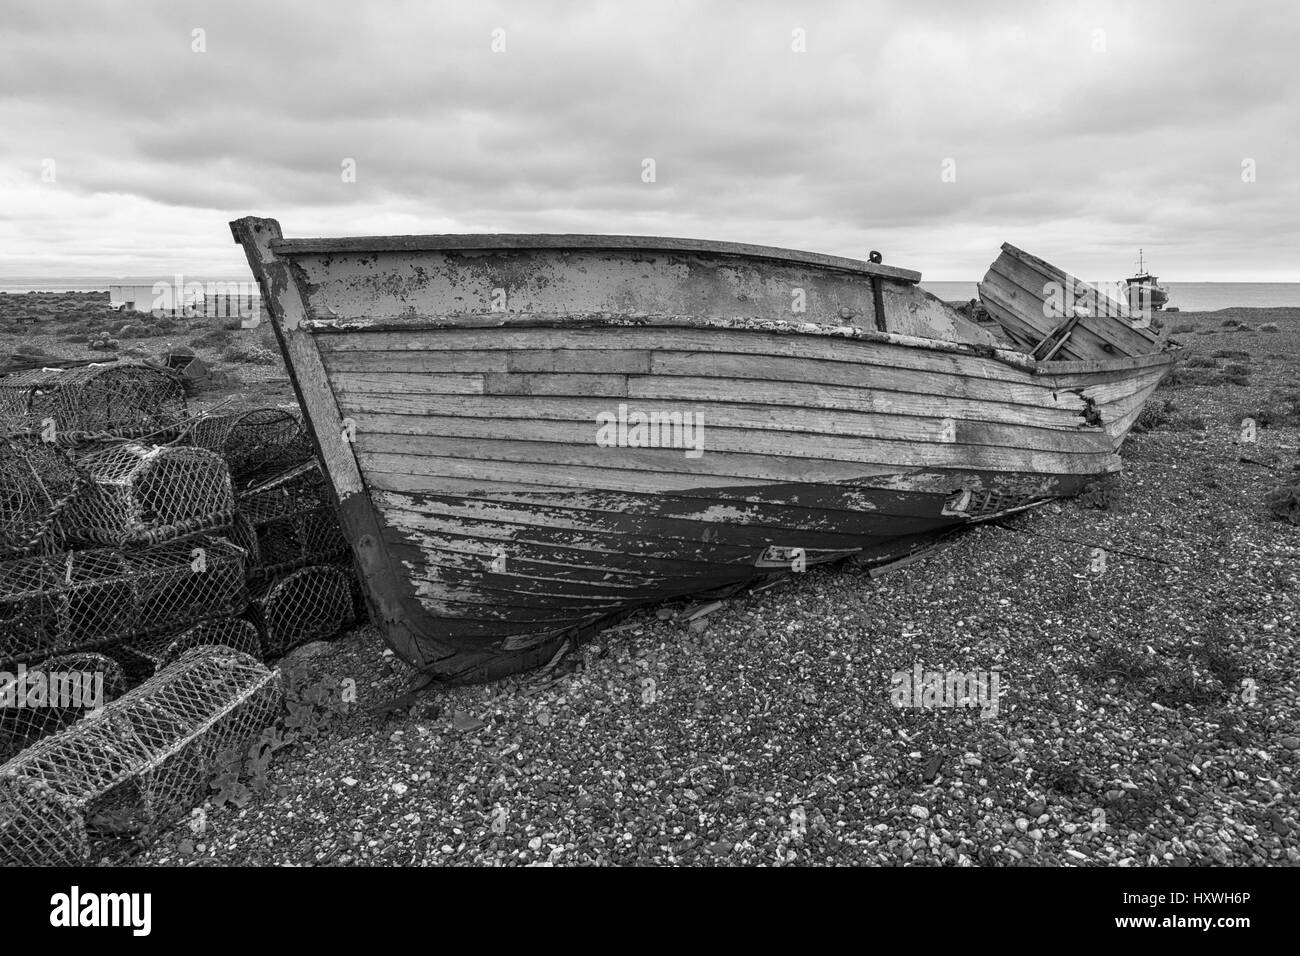 The wreck of an old wooden fishing boat on the shingle beach at Dungeness, Kent, England, UK - Stock Image